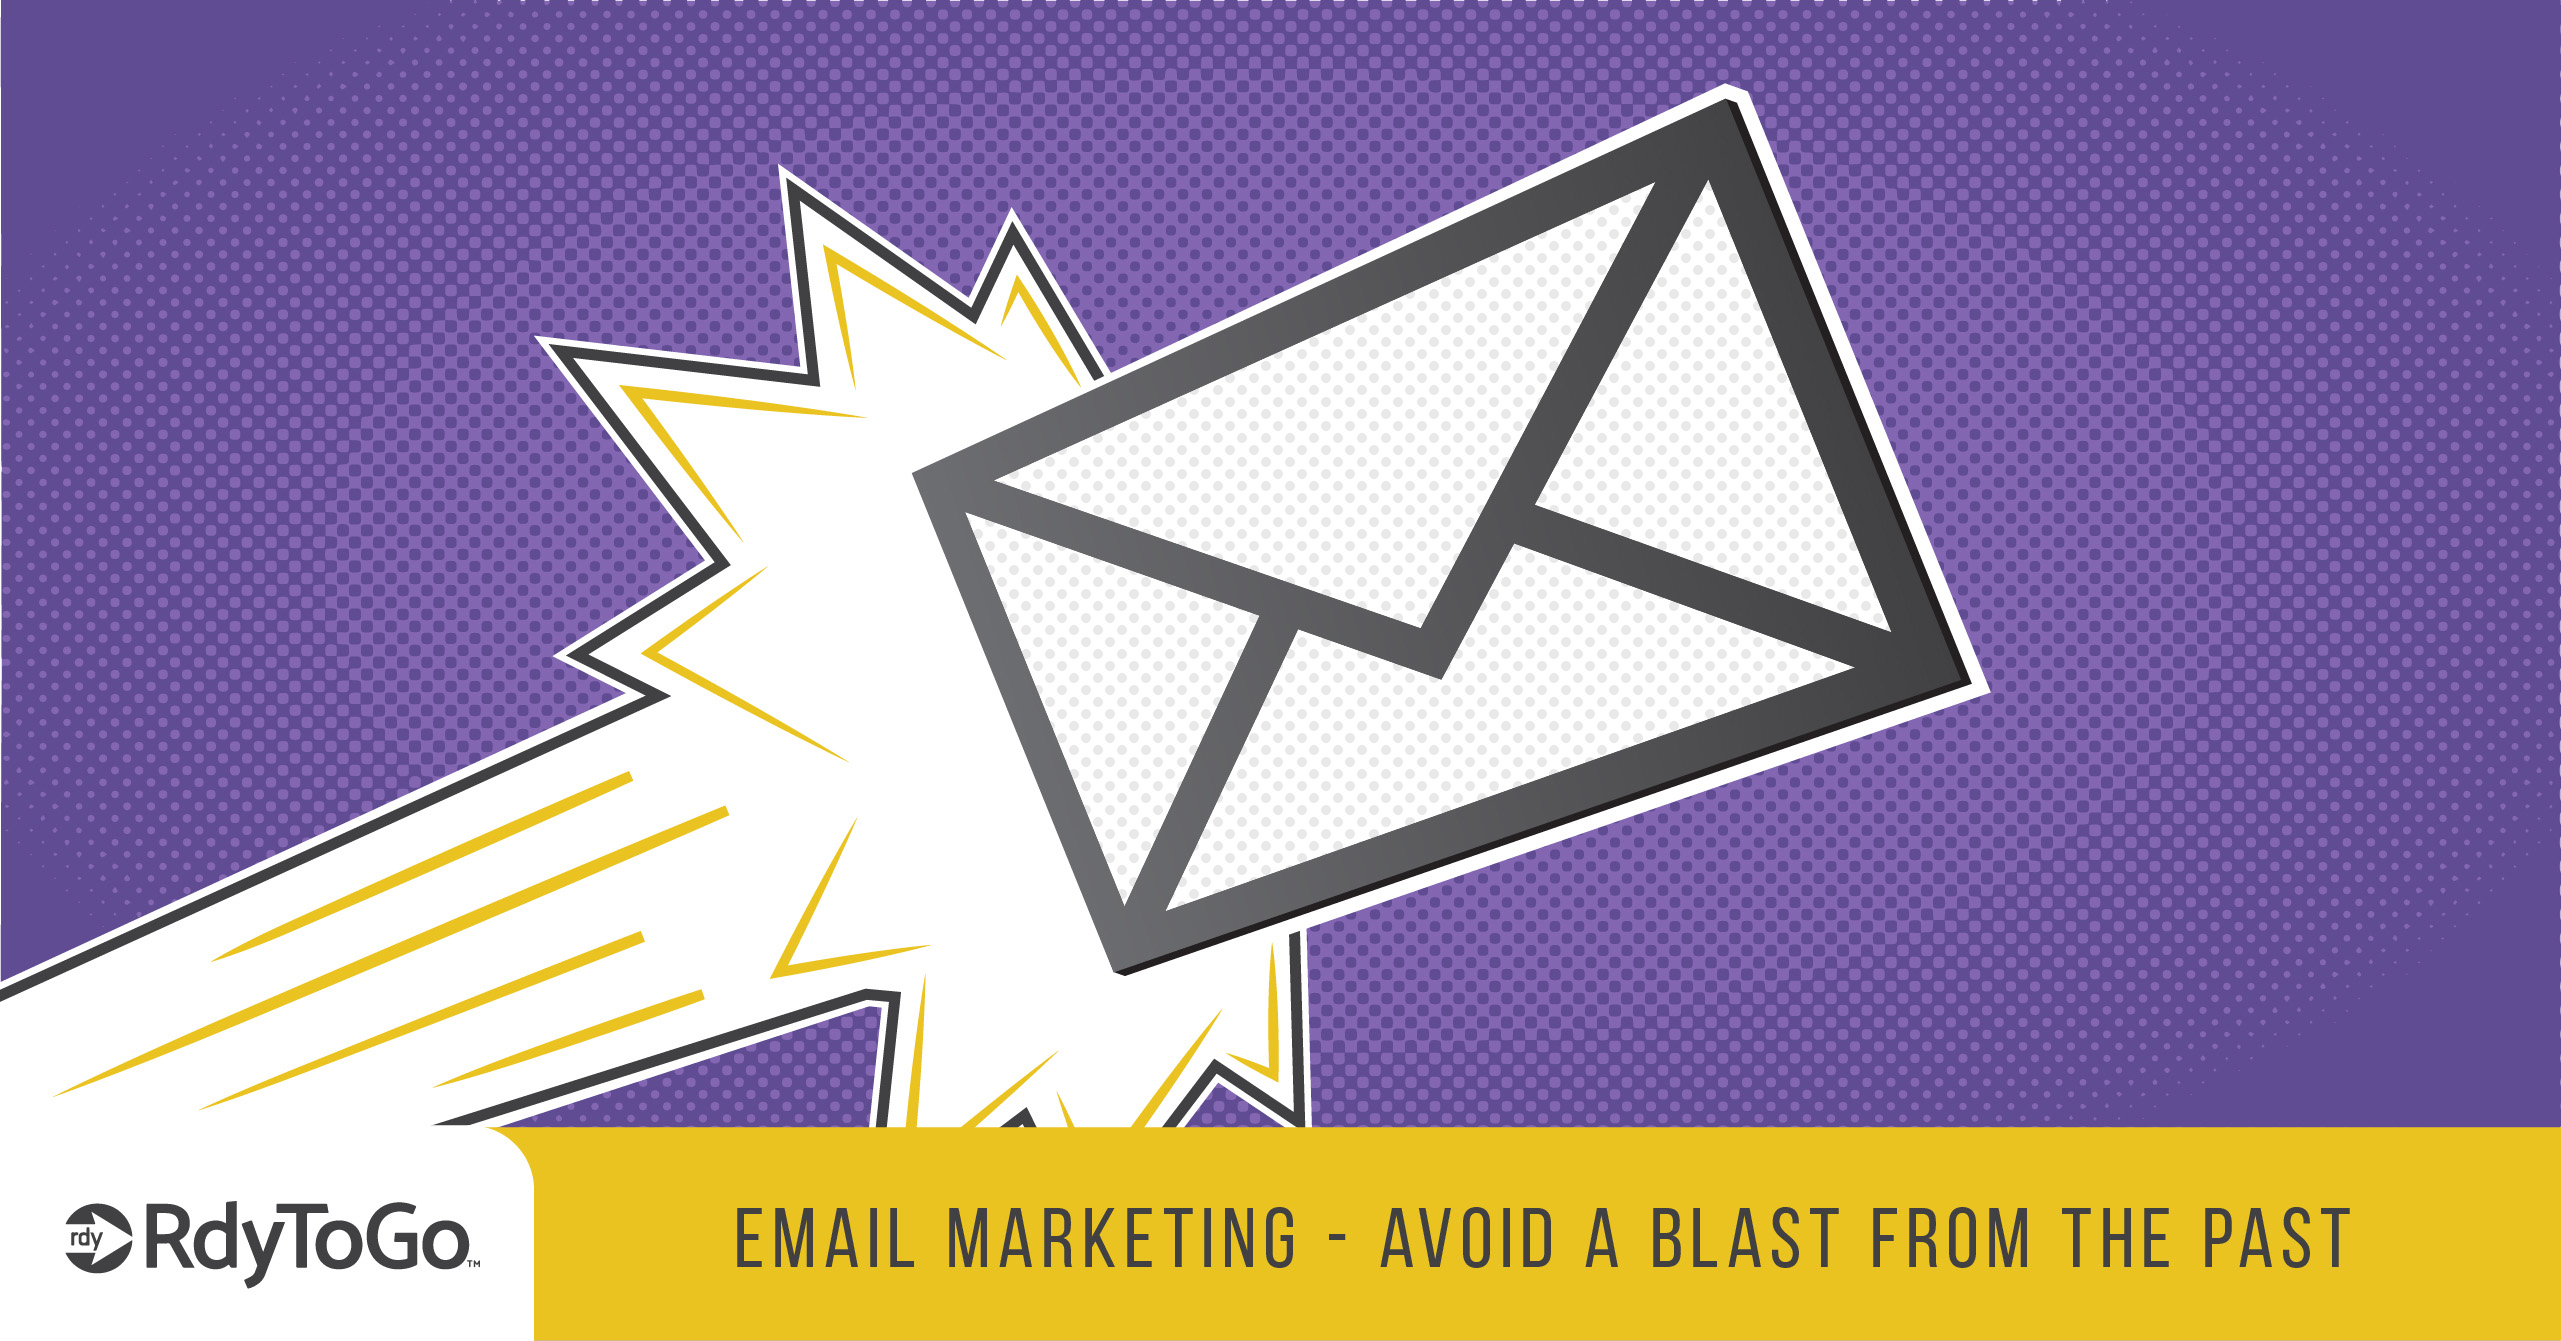 Email Marketing – Avoid a Blast From the Past